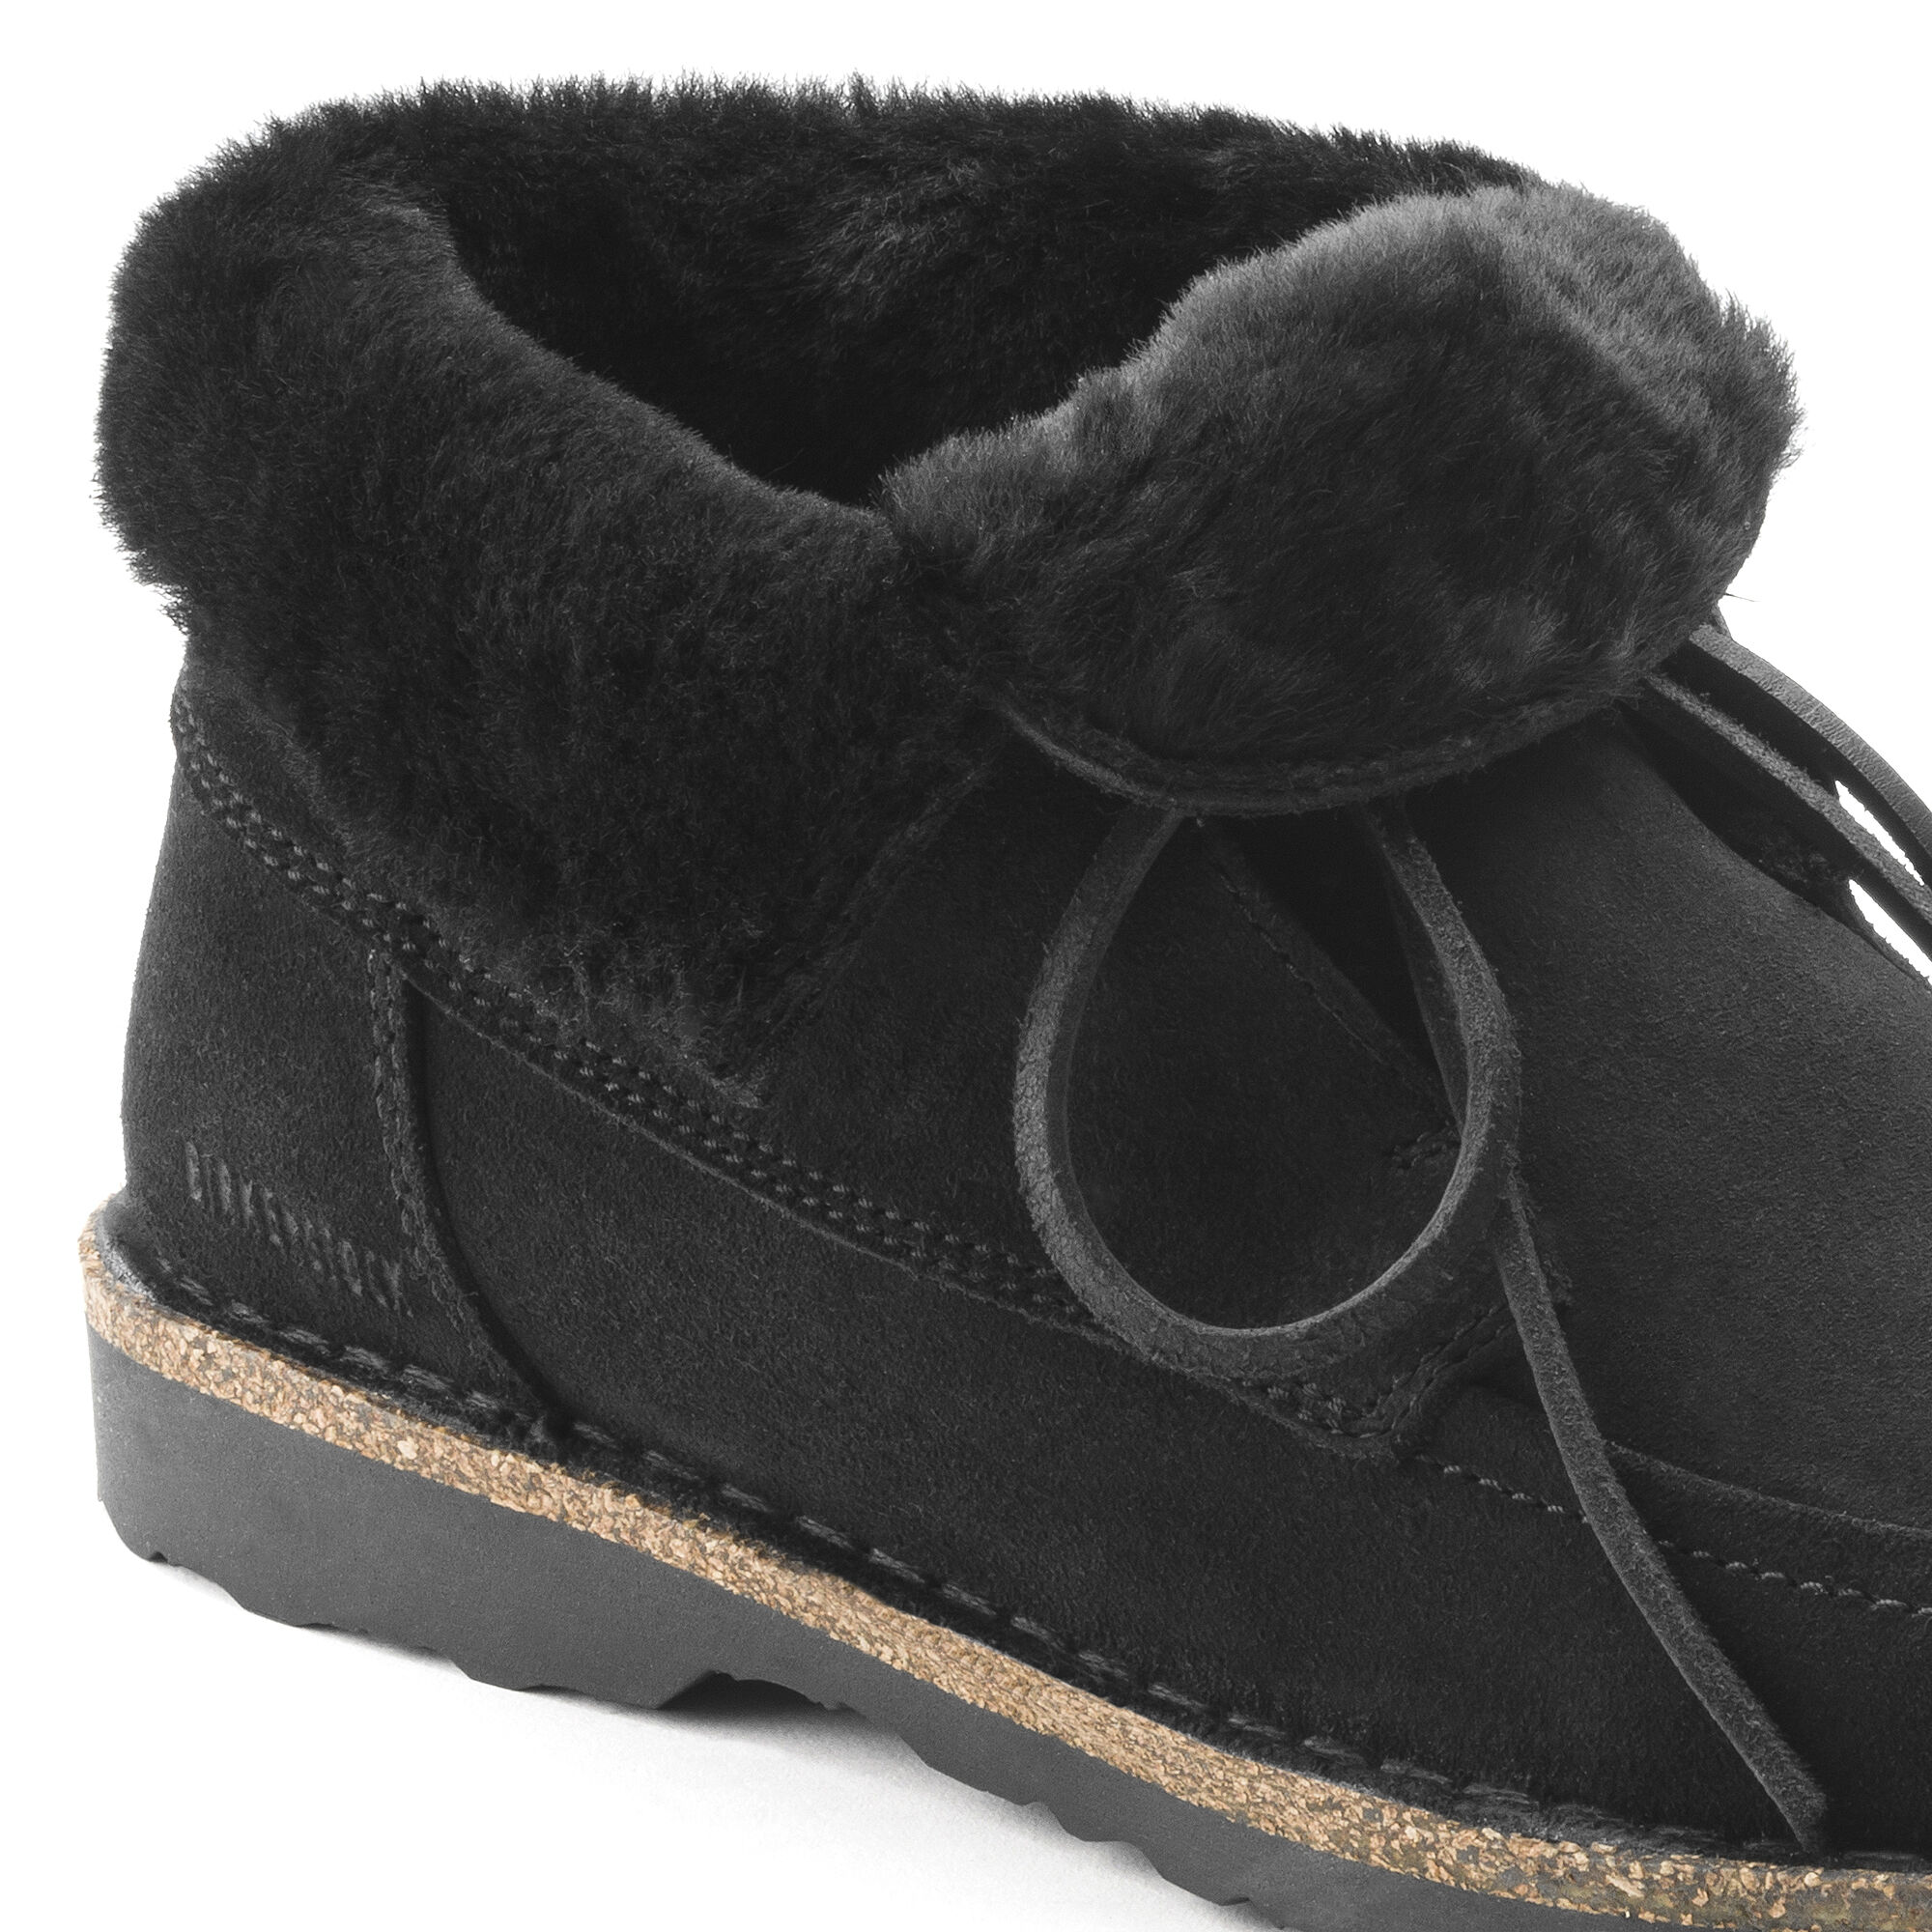 Birkenstock Bakki at £135 | love the brands